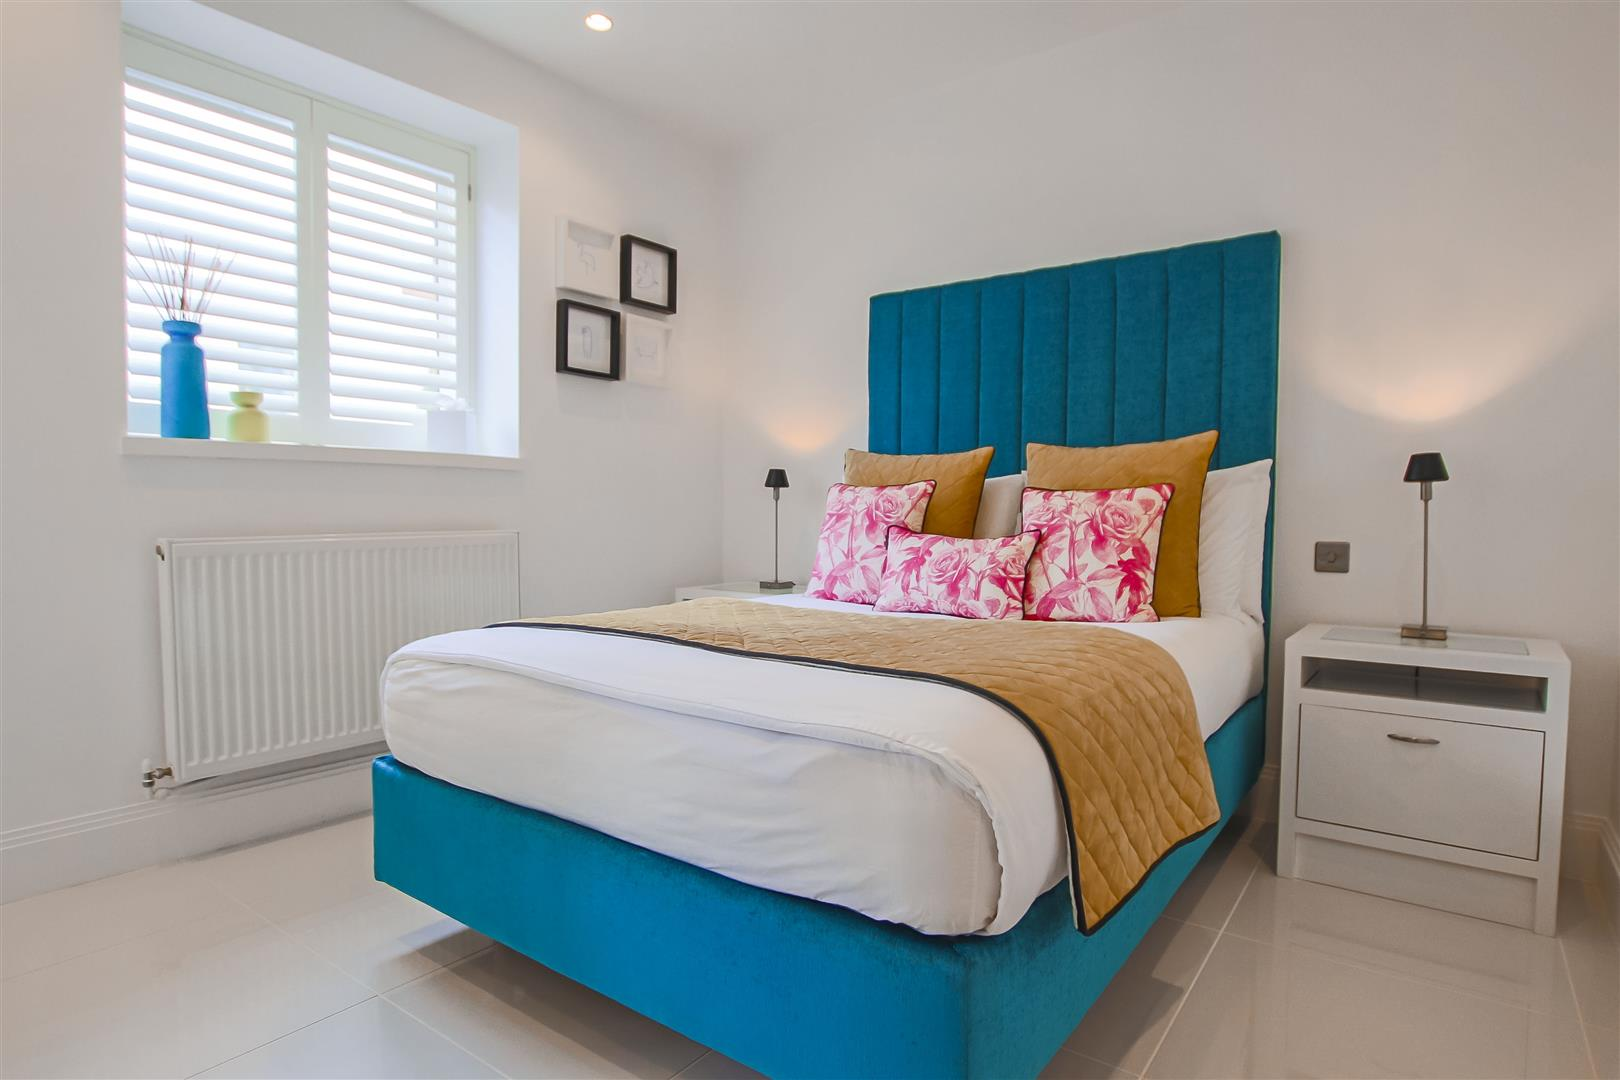 2 Bedroom Apartment For Sale - Image 6